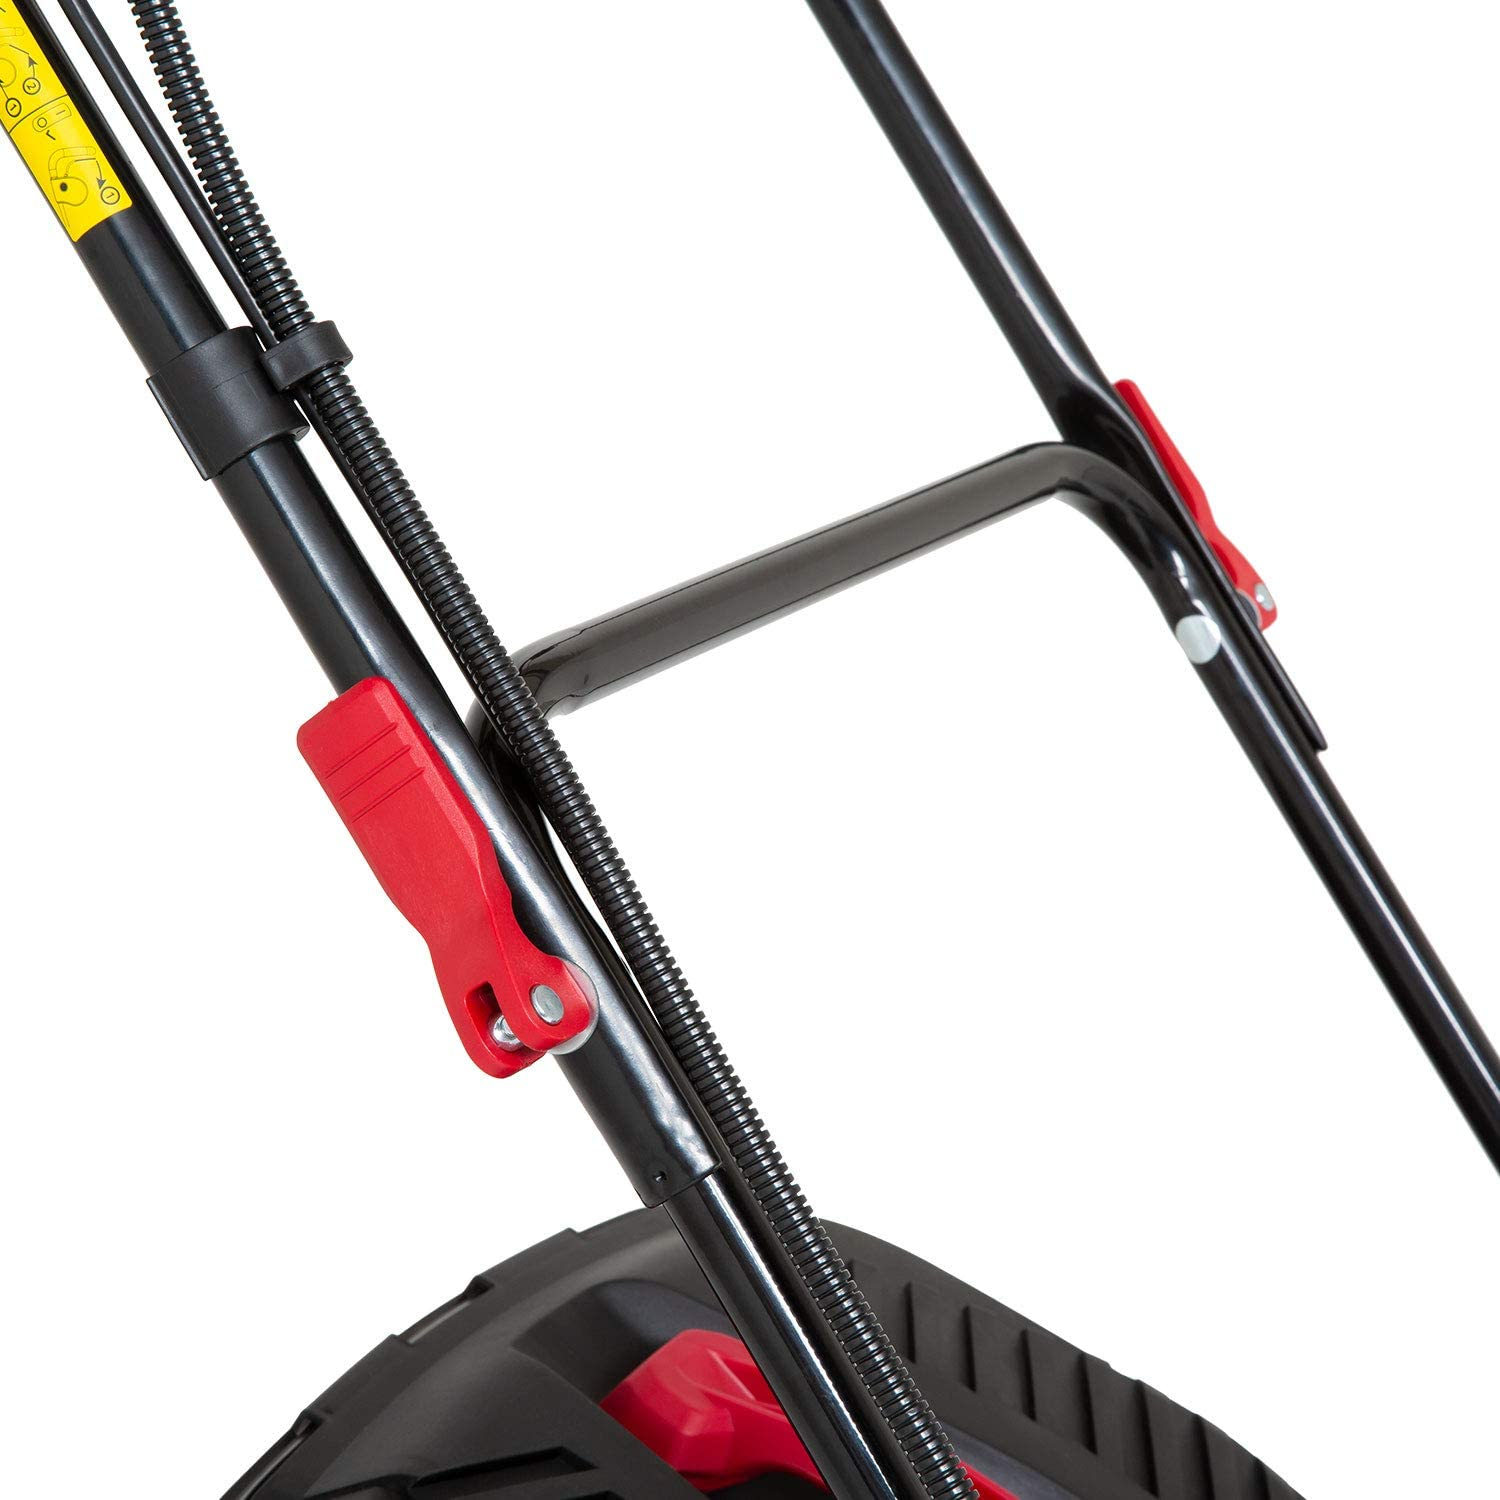 Red Lithium-Ion 44cm Cordless Lawn Mower 440P18V 5 Years Warranty Including 2X 5Ah Battery and Dual Charger 36V Sprint 2x18V